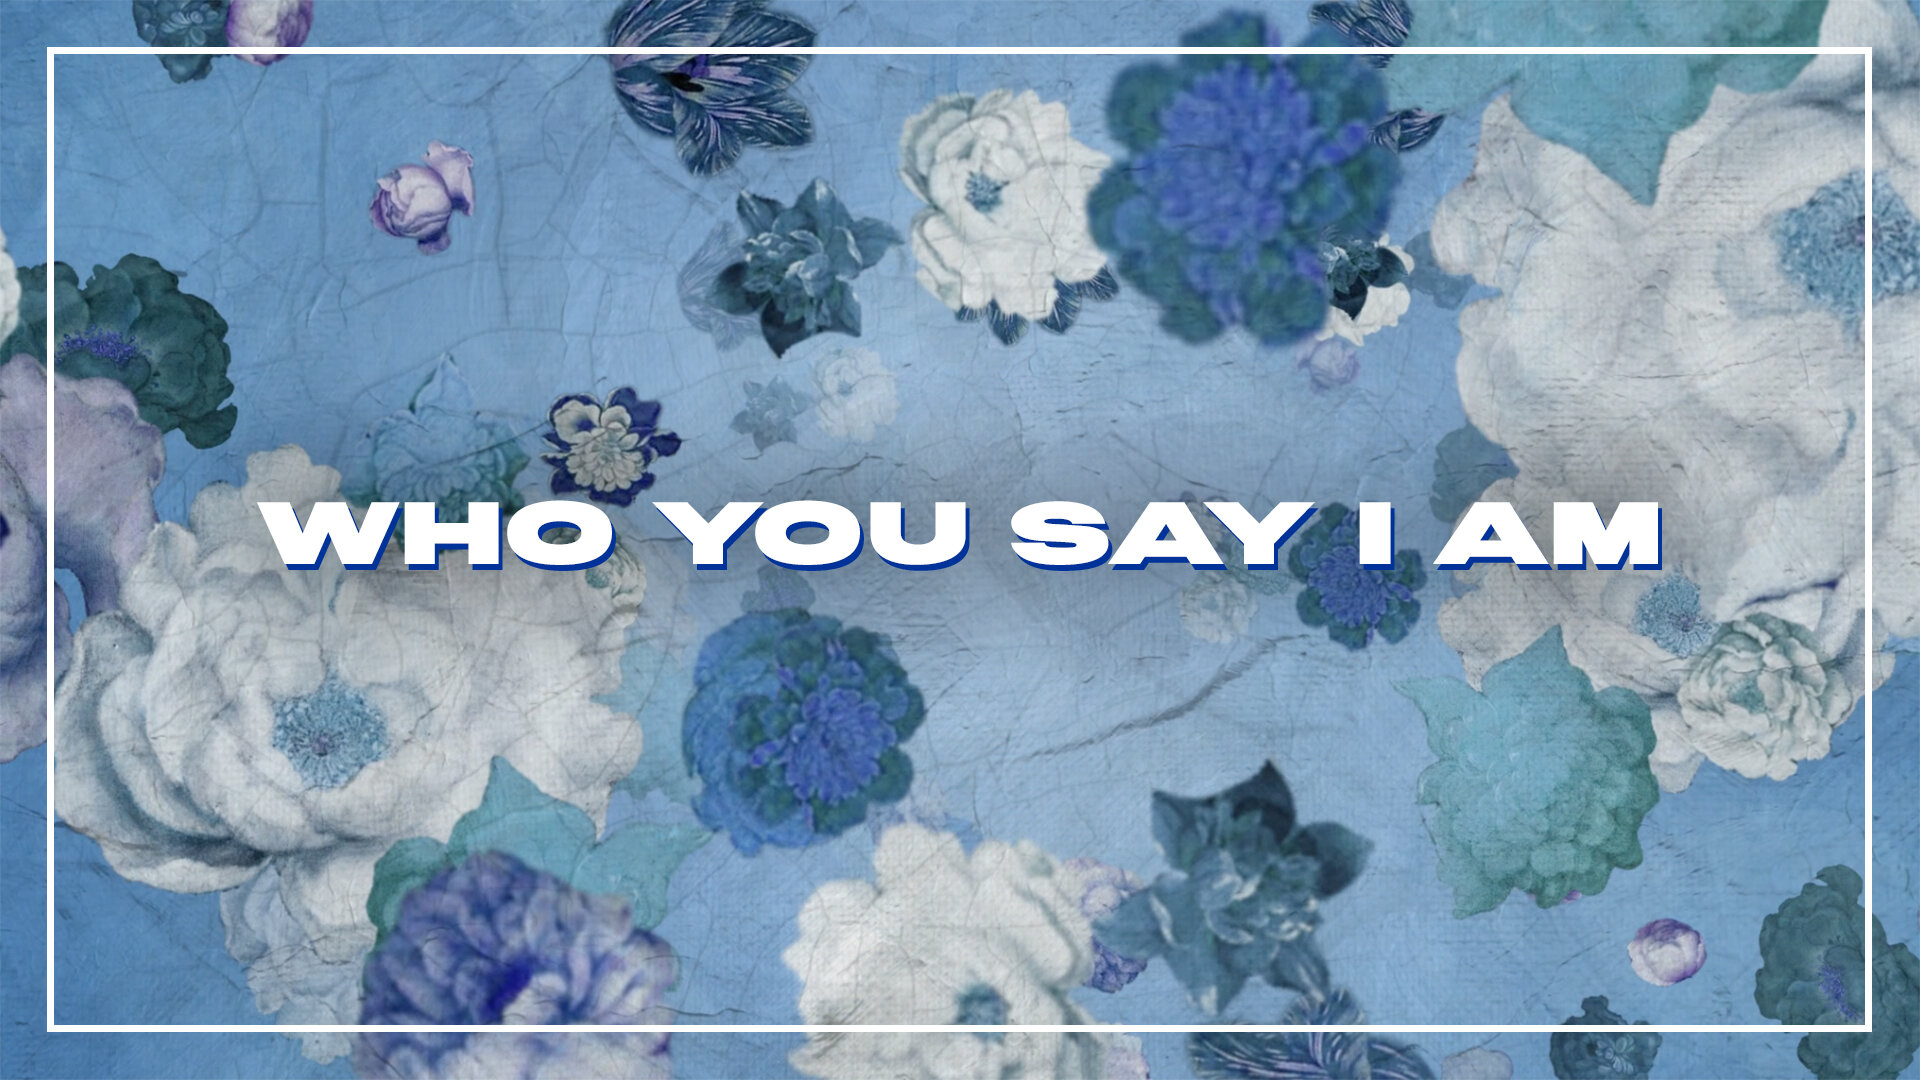 SeeingSounds_WhoYouSayIAm_Poster2.jpg